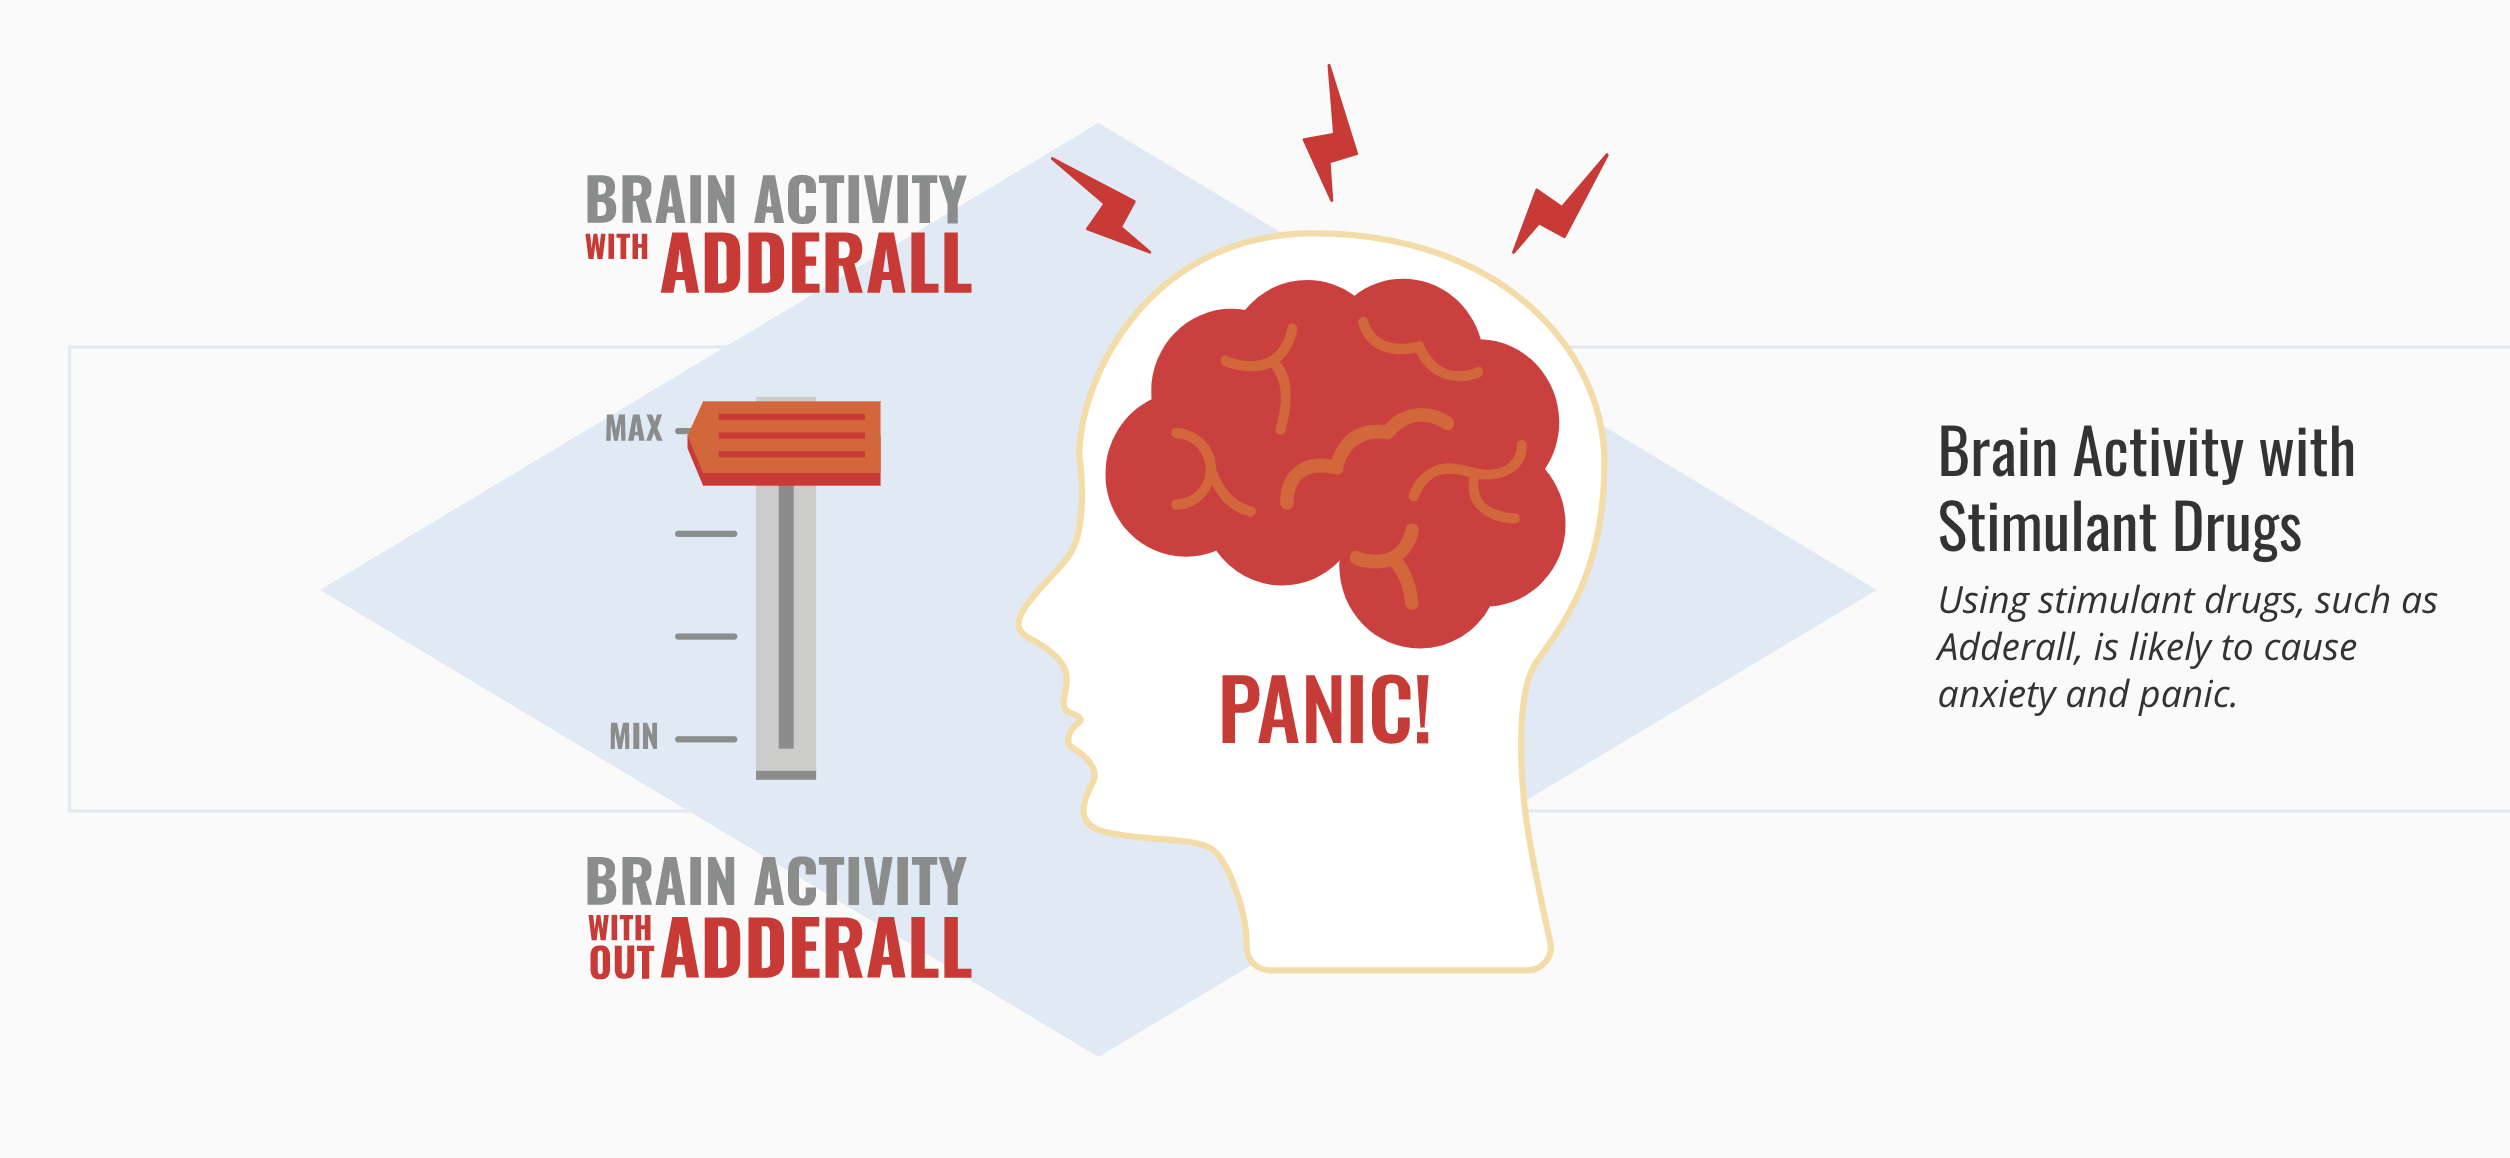 brain activity with stimulant drugs like Adderall